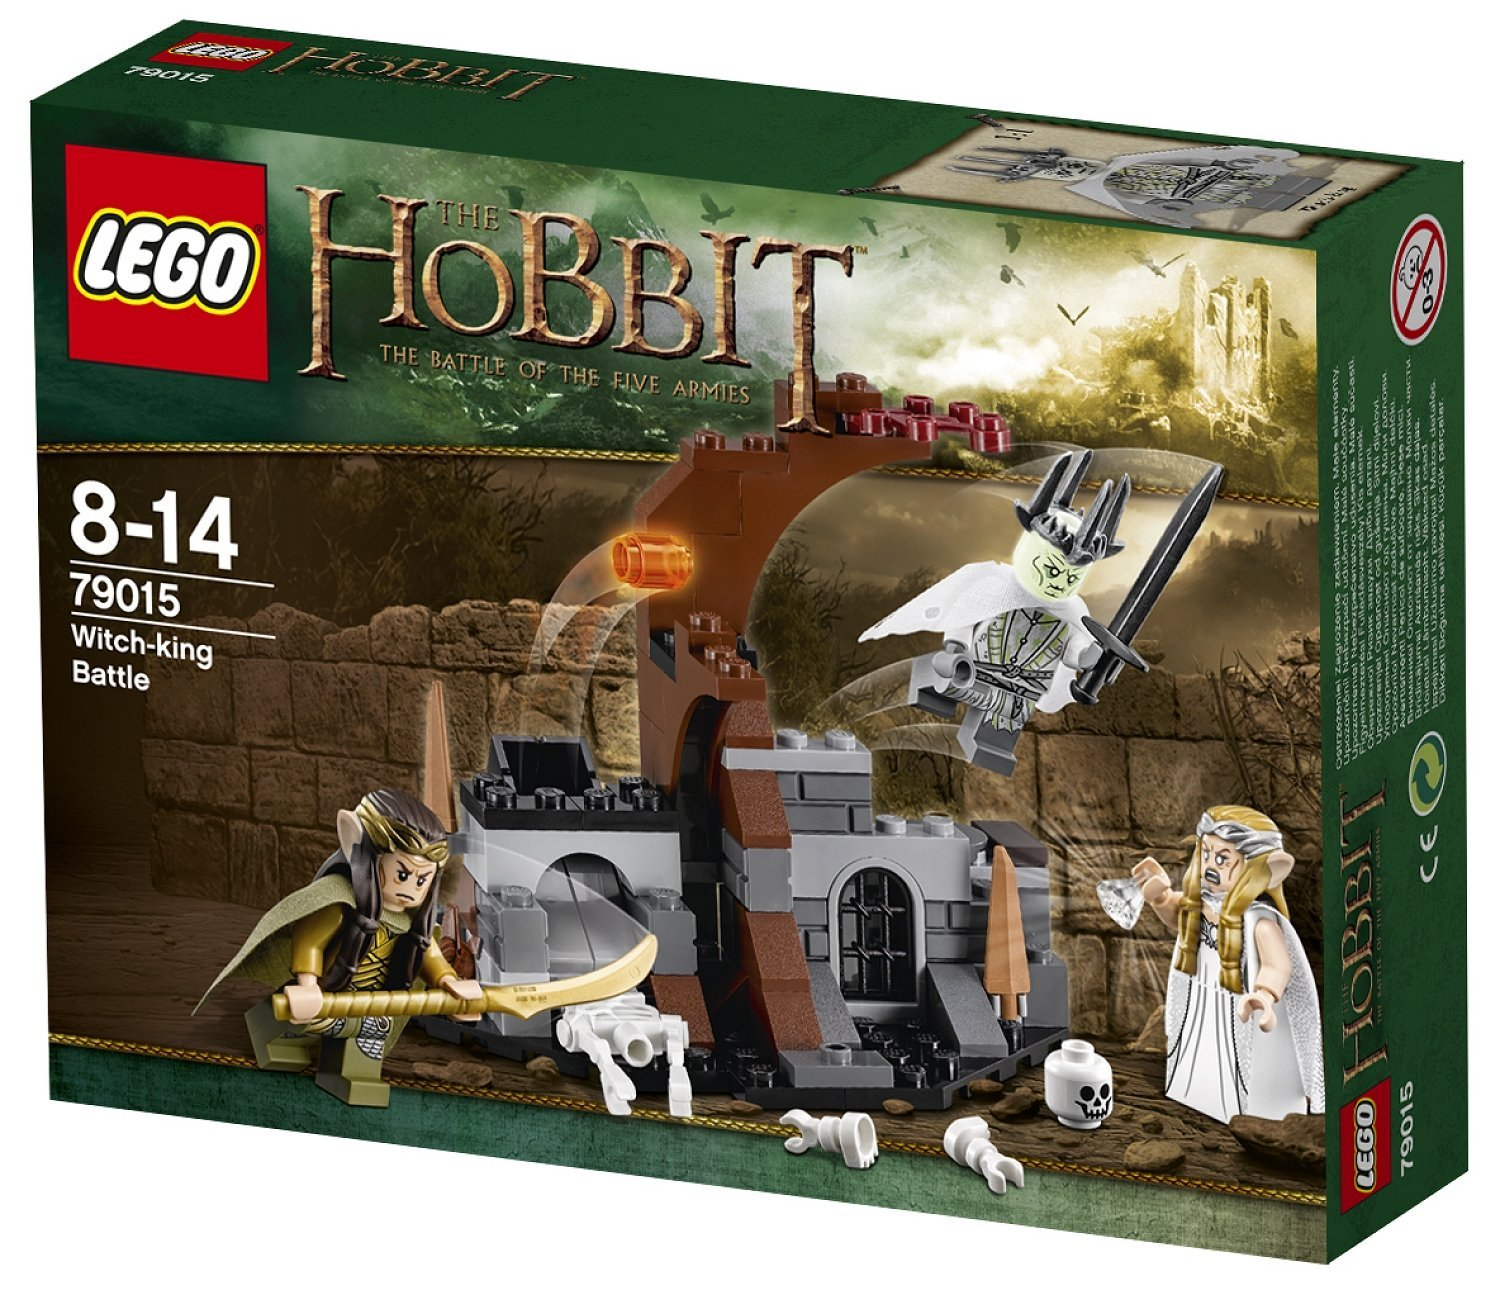 Review Lego The Hobbit 79015 Witch King Battle Jays Brick Blog